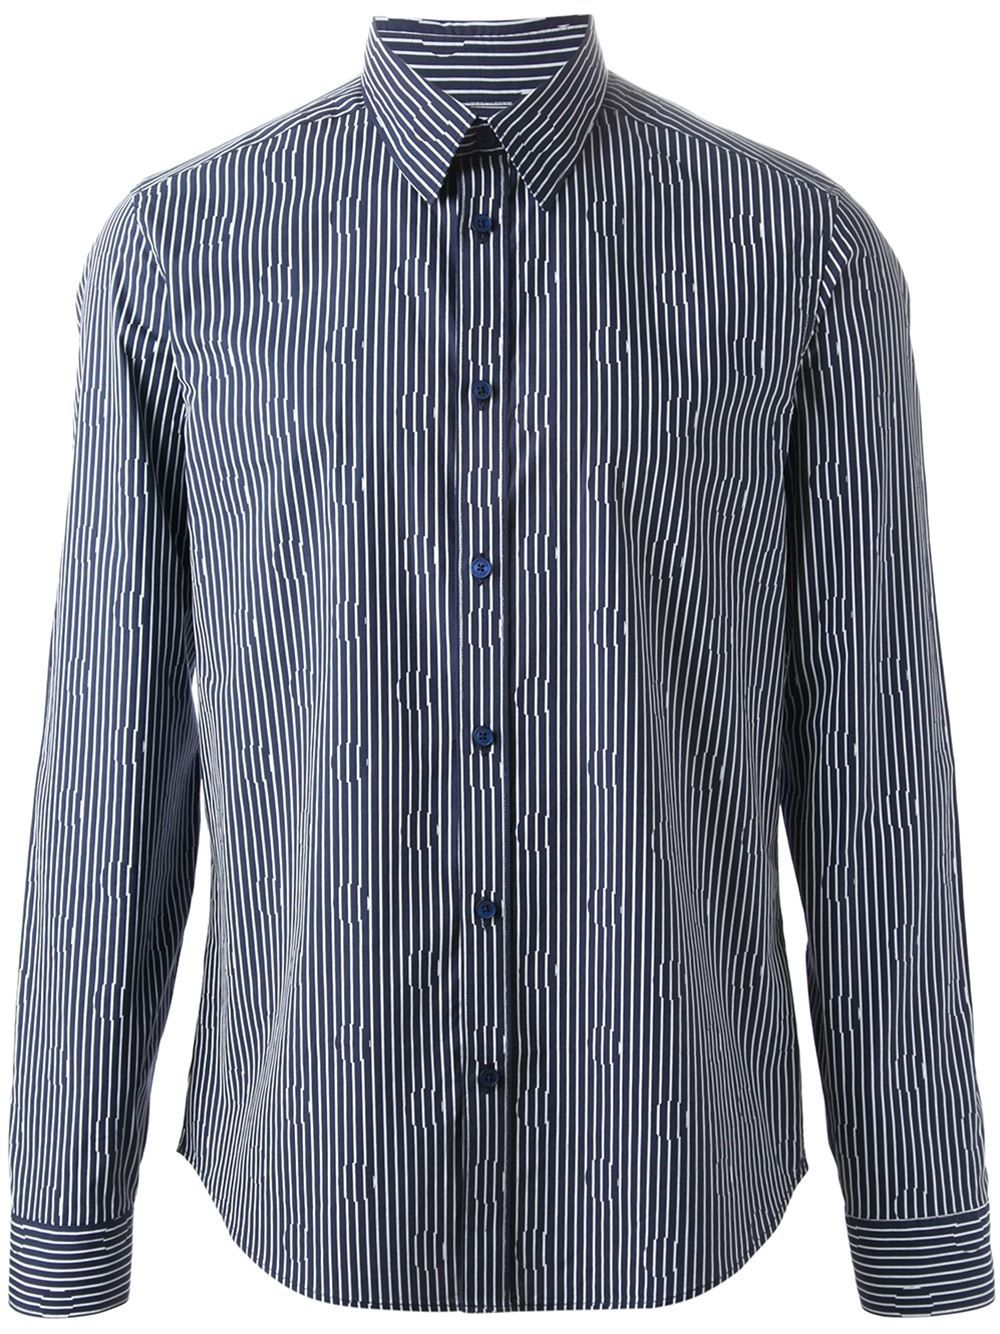 14c09d471b9c91 Kenzo Stripes And Dots Shirt - Boutique Mantovani - Farfetch.com | A ...